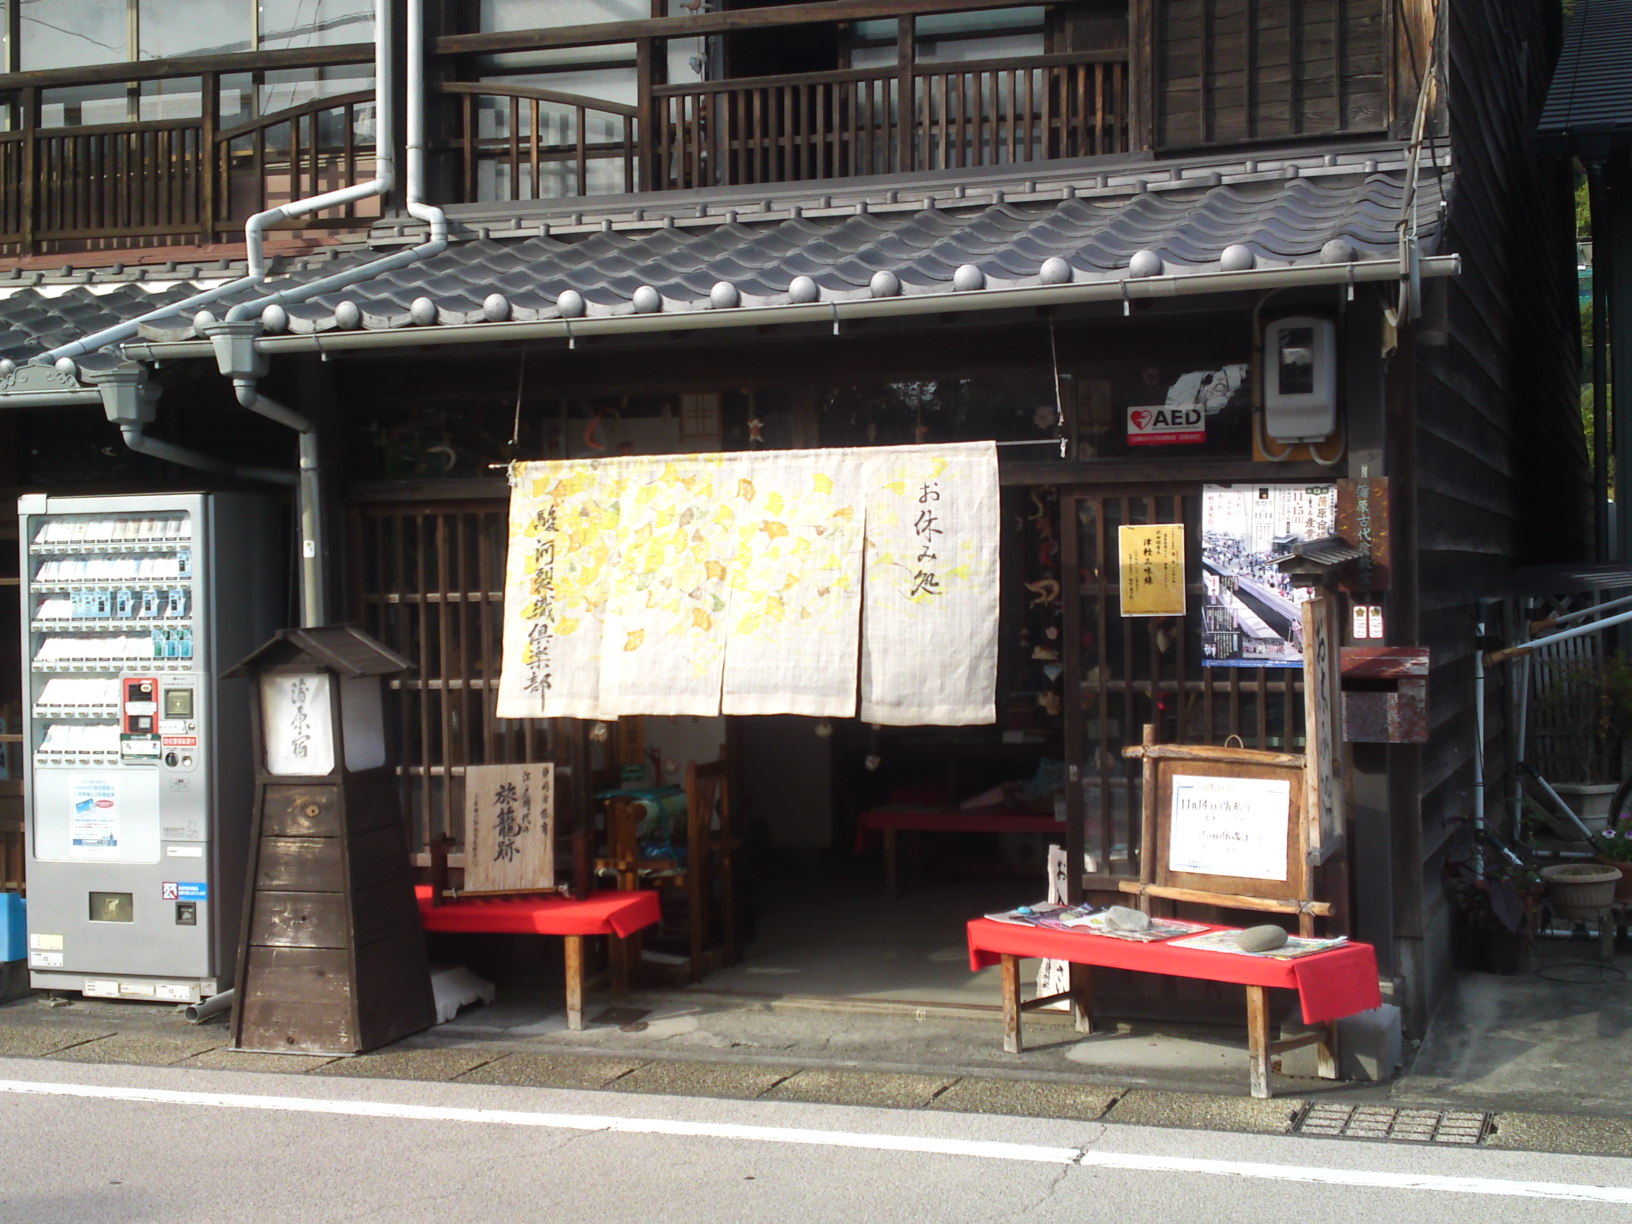 Art,shop,souvenir,curtain,noren,pattern,traditional,izakaya